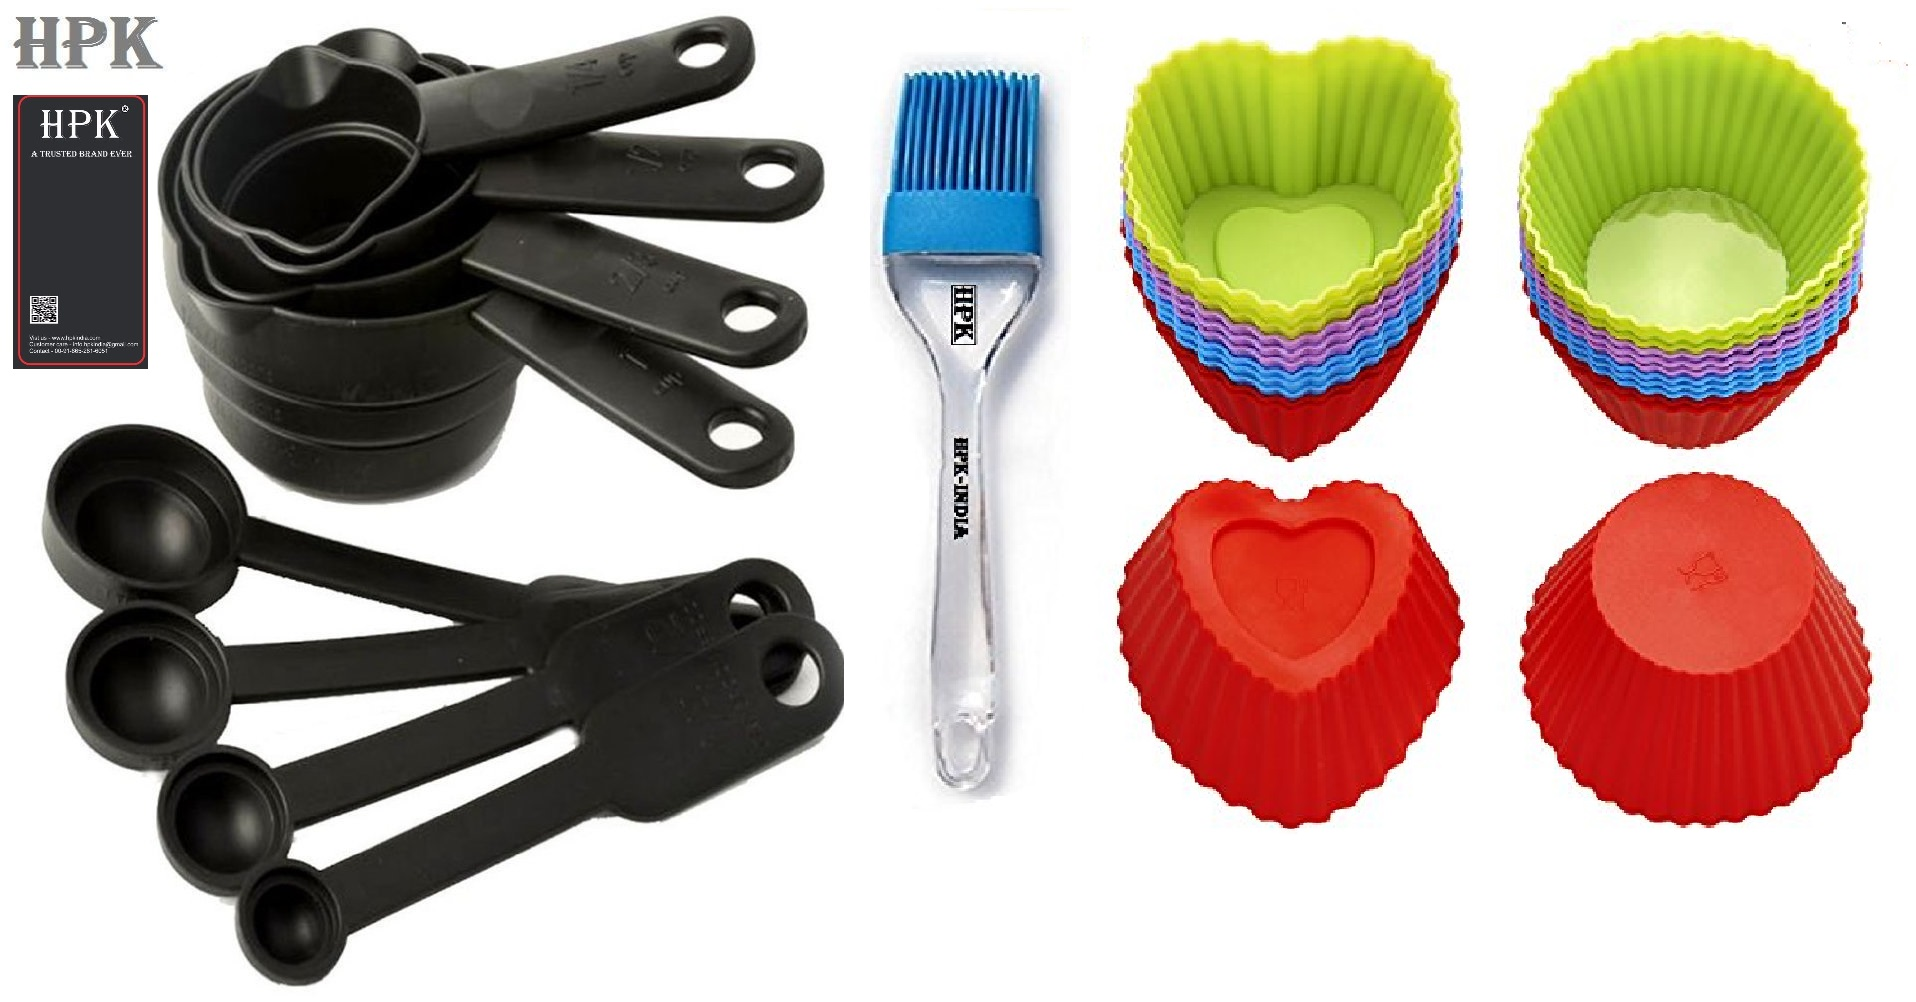 Hpk 8 Piece Measuring Cups & Spoons Silicone  Pastry Brush heart and round mold